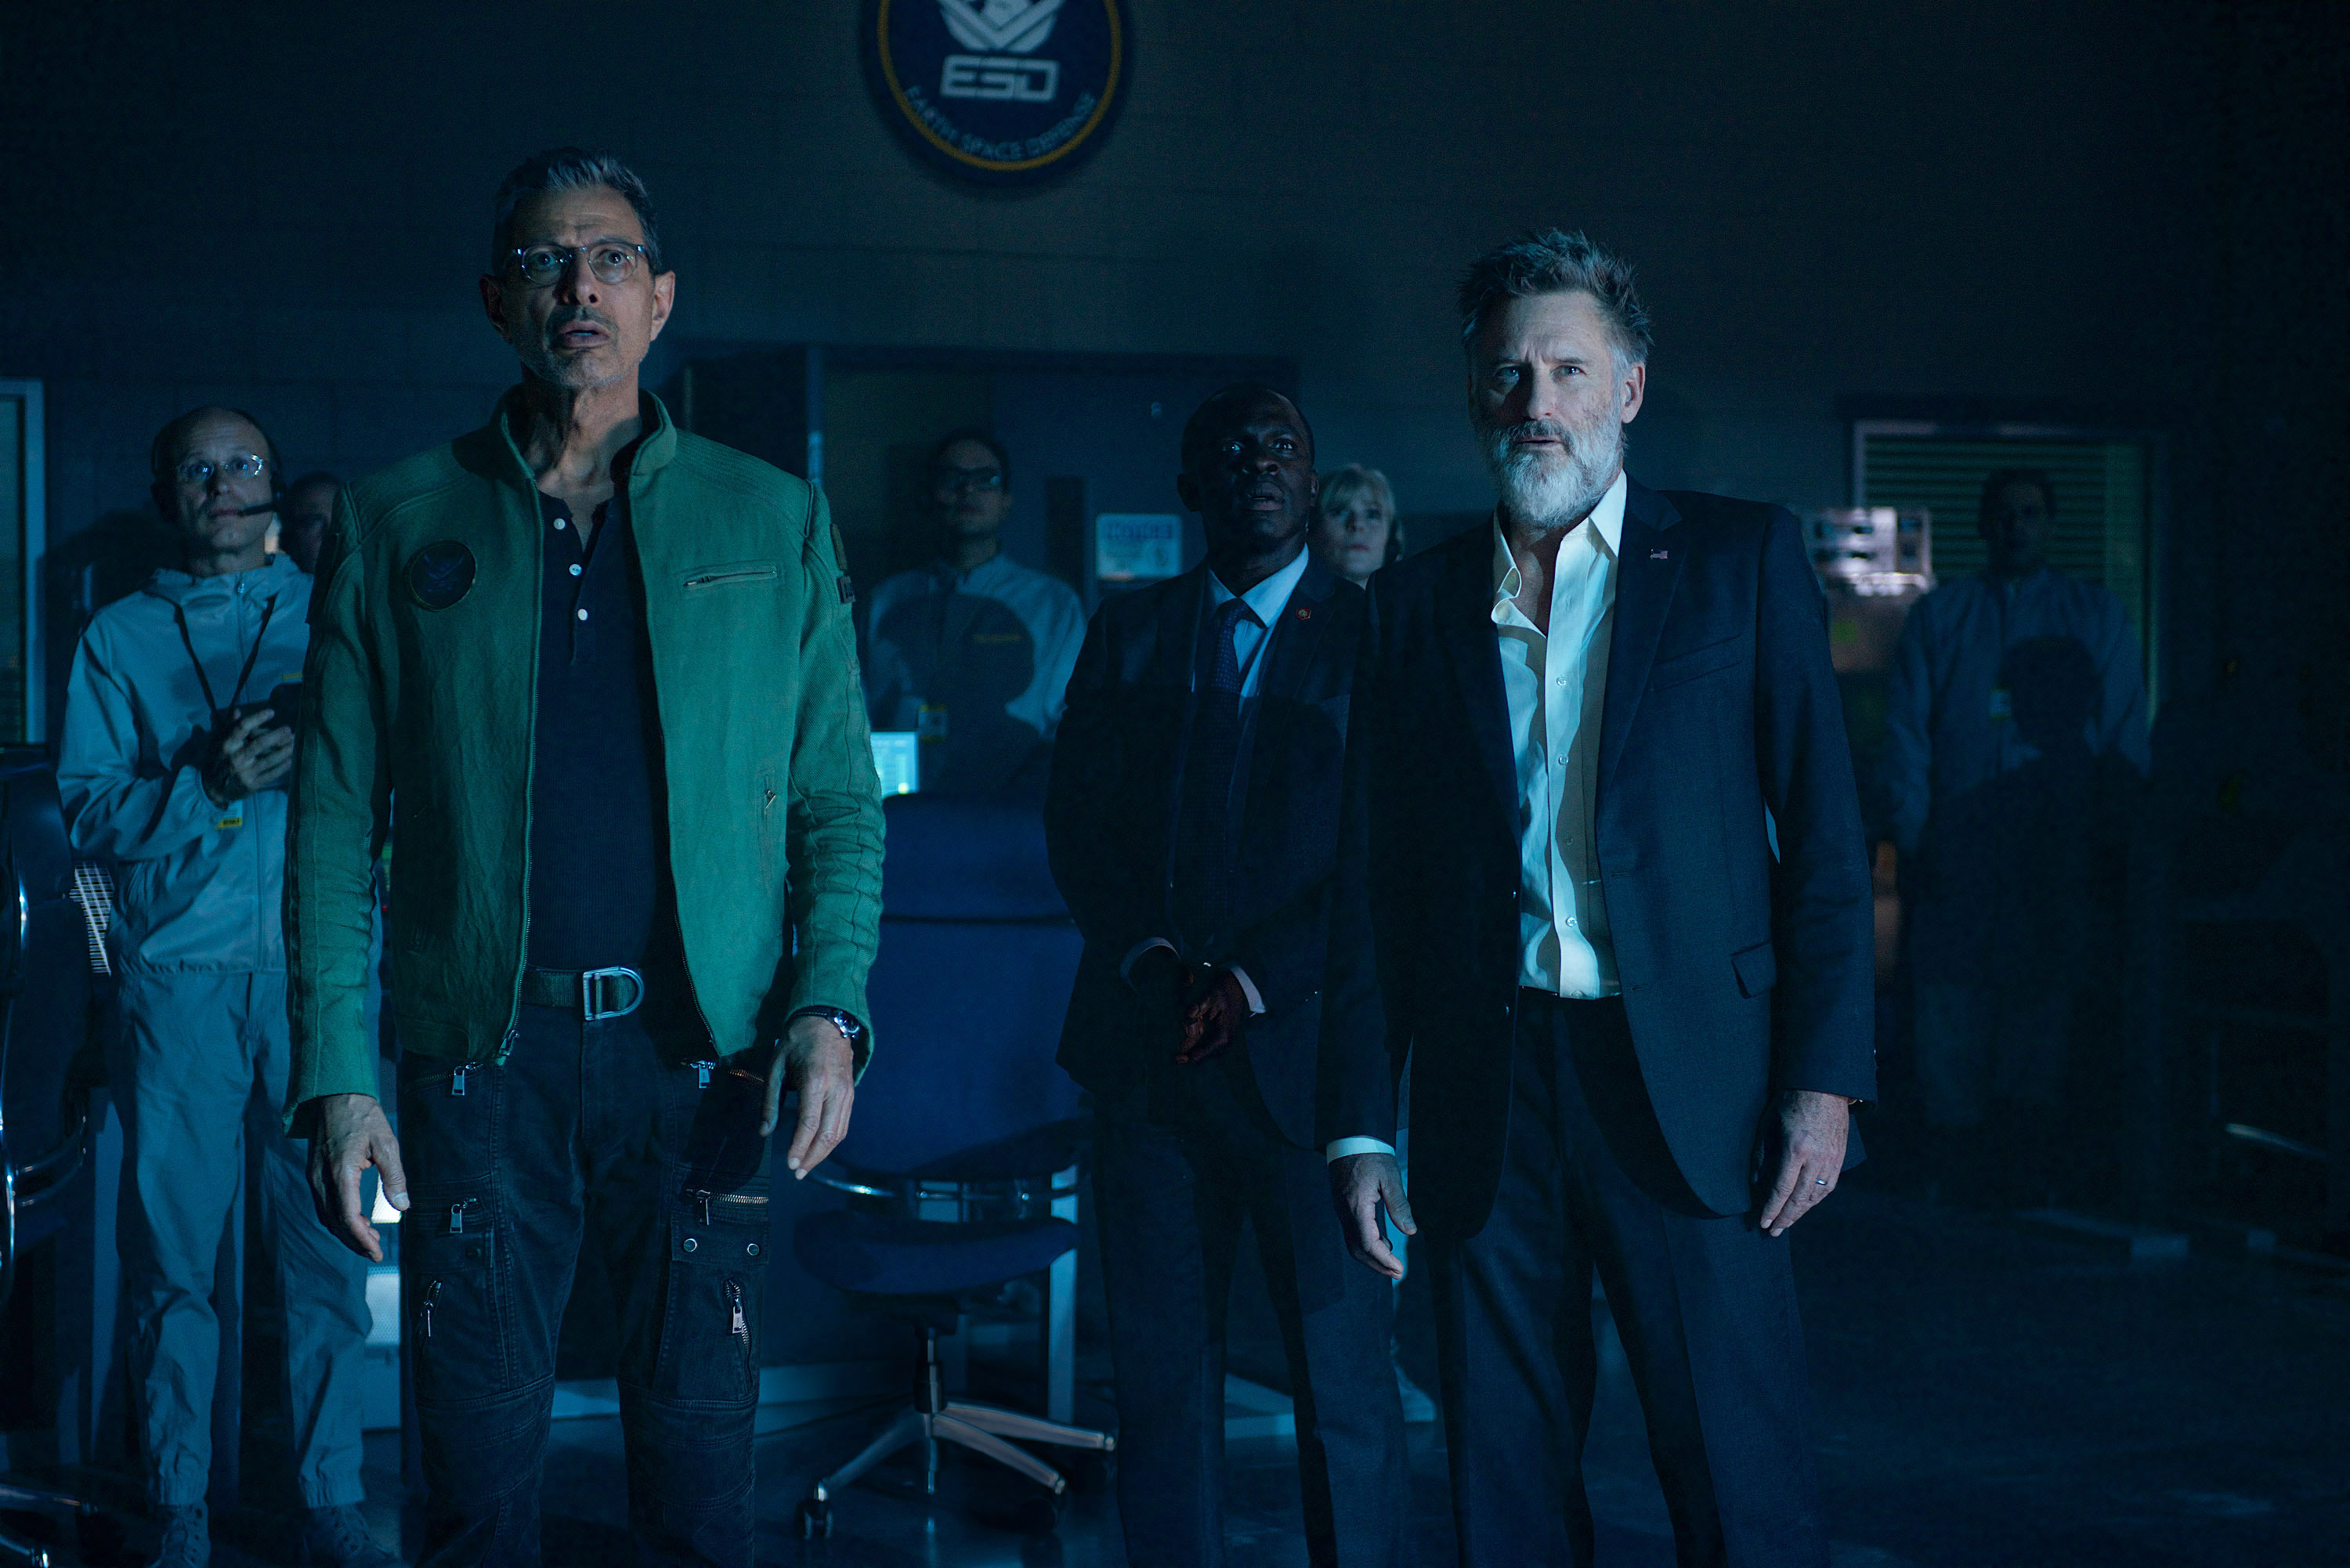 jeff-goldblum-bill-pullman-independence-day-resurgence.jpg